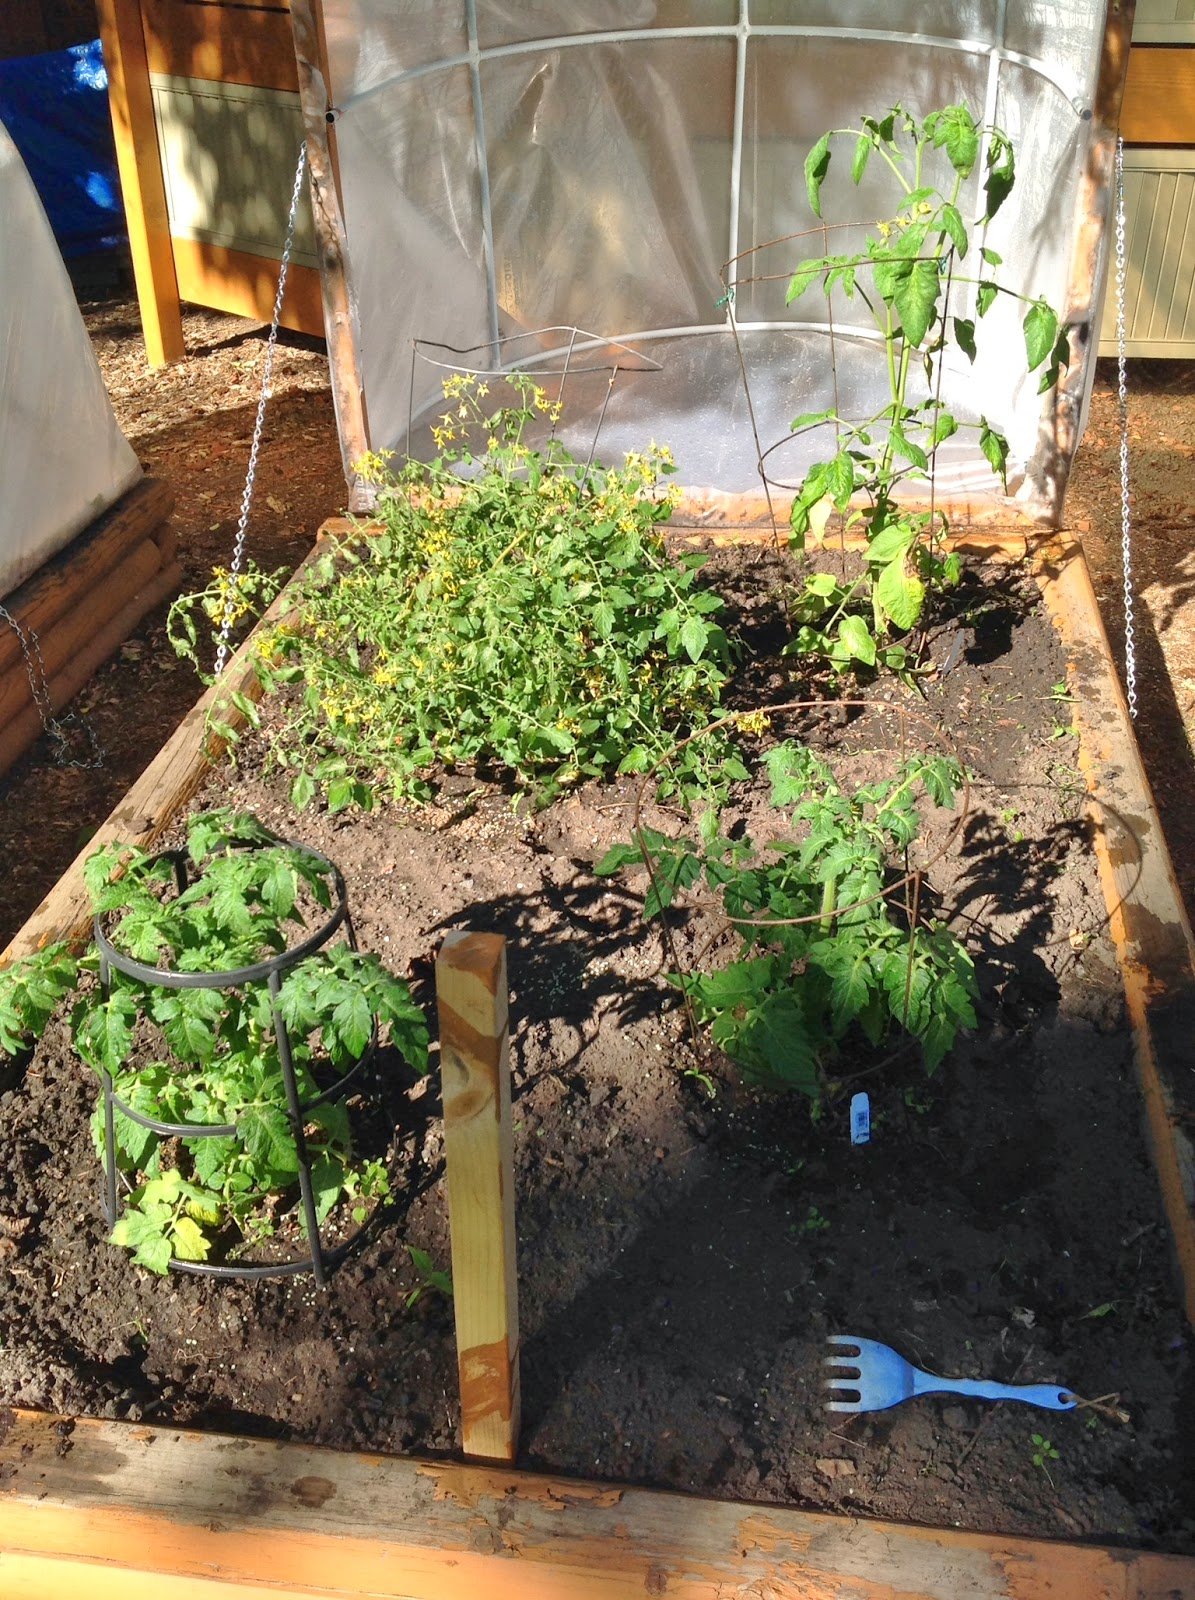 diy greenhouses for raised garden beds | the interior frugalista